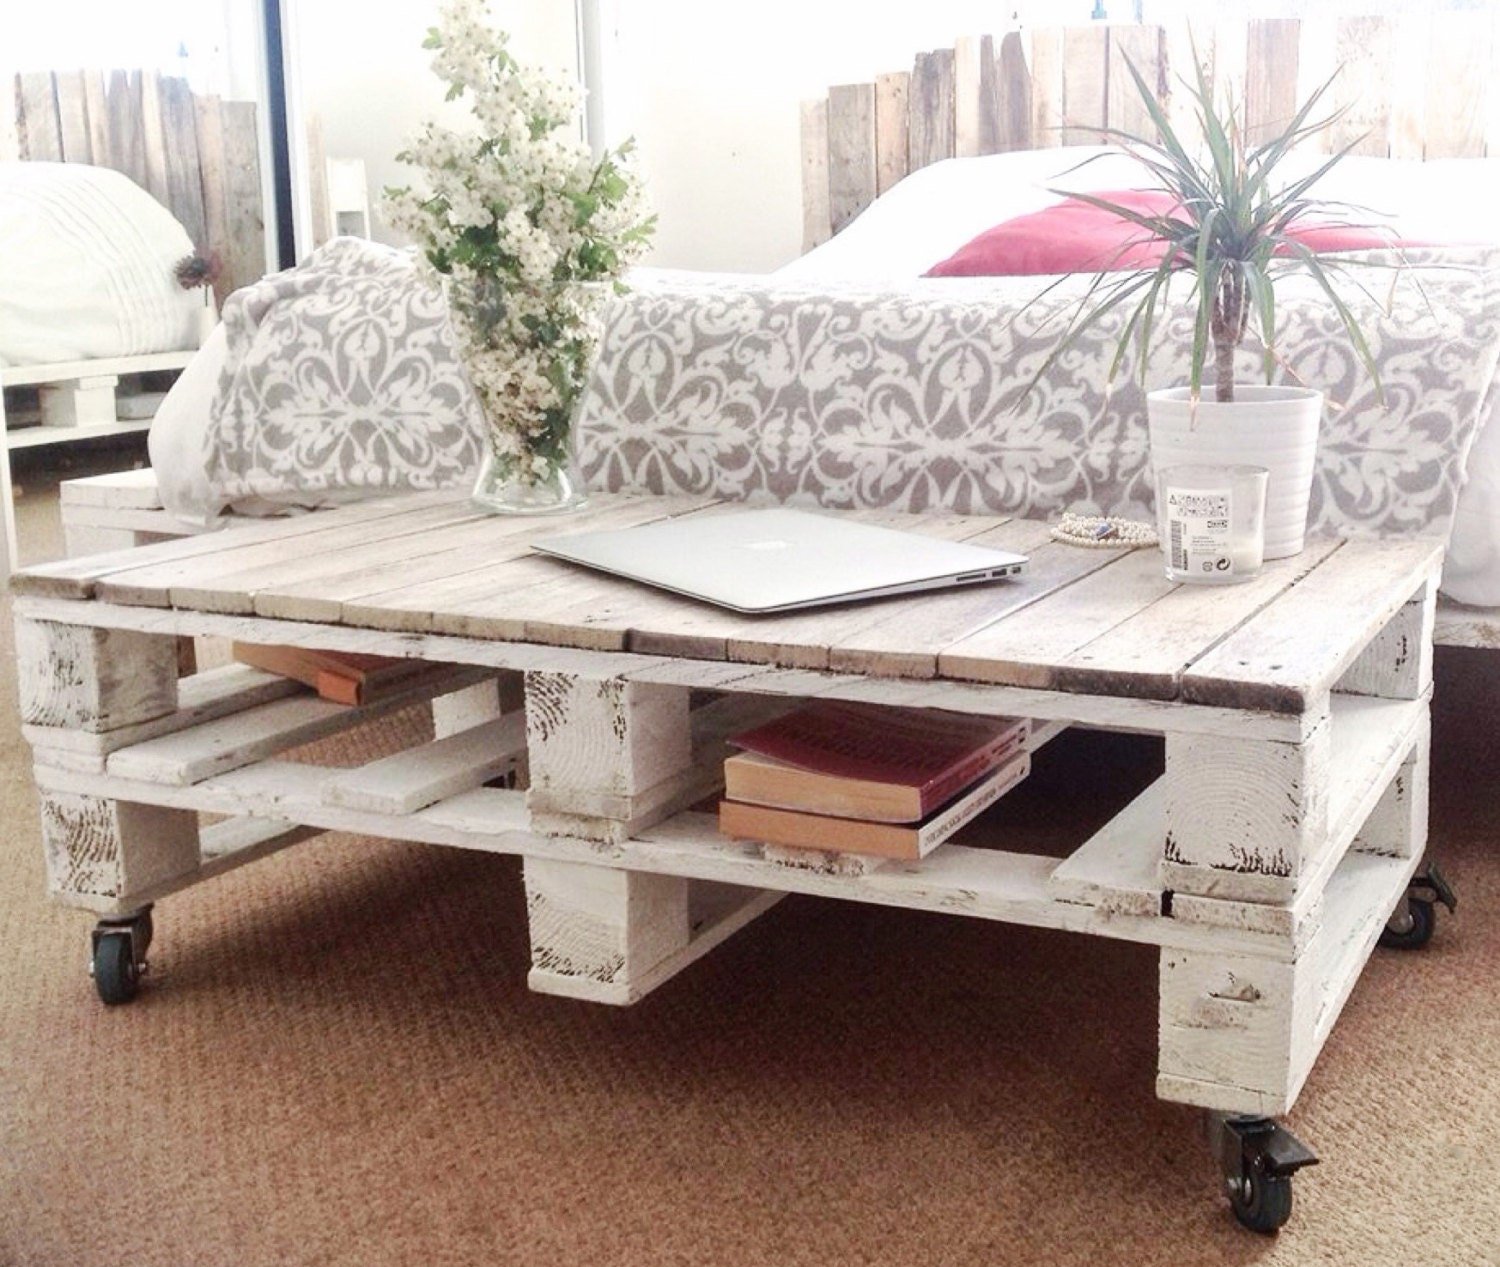 Pallet coffee table esma in farmhouse style with castor wheels Farm style coffee tables